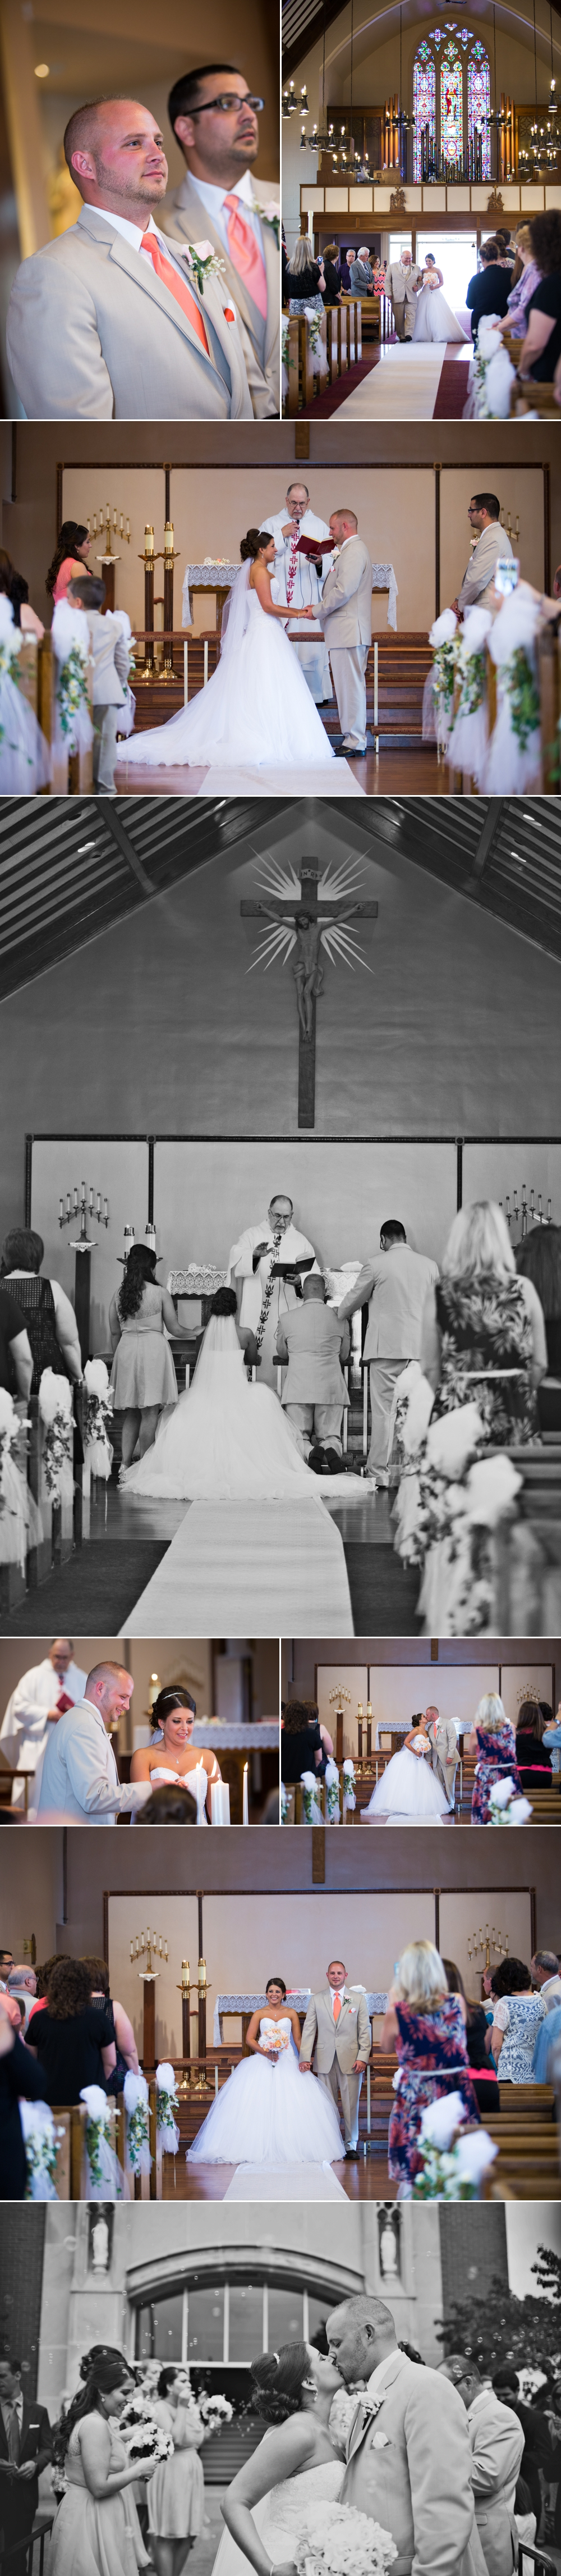 Rankin Wedding Blog 2